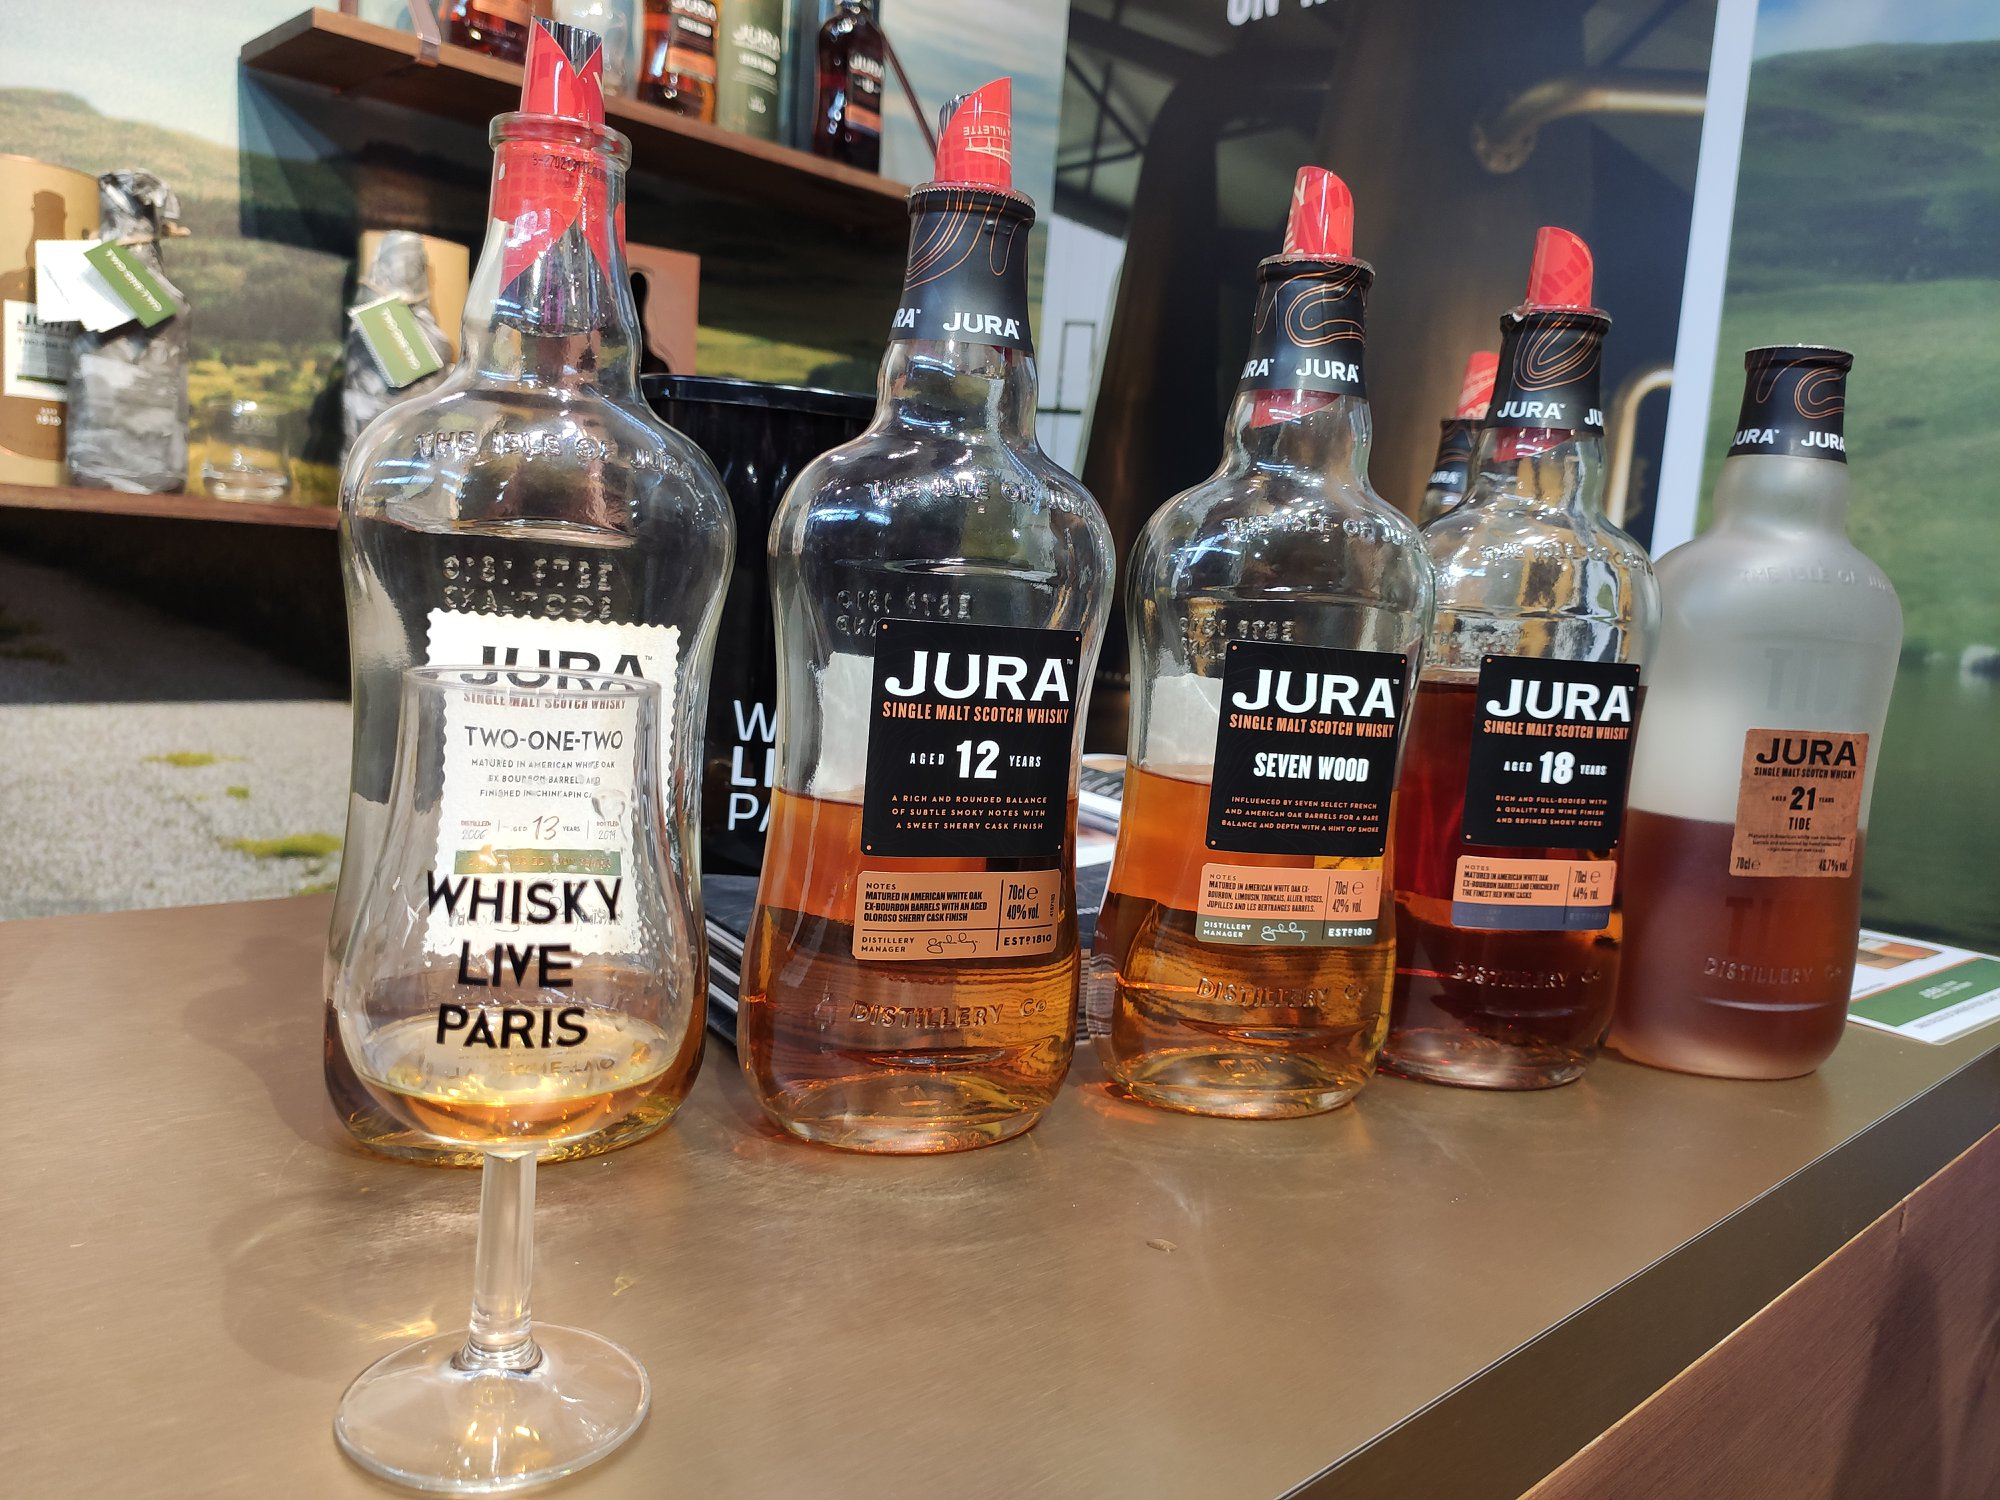 Jura Two One Two - Whisky Live Paris 2019